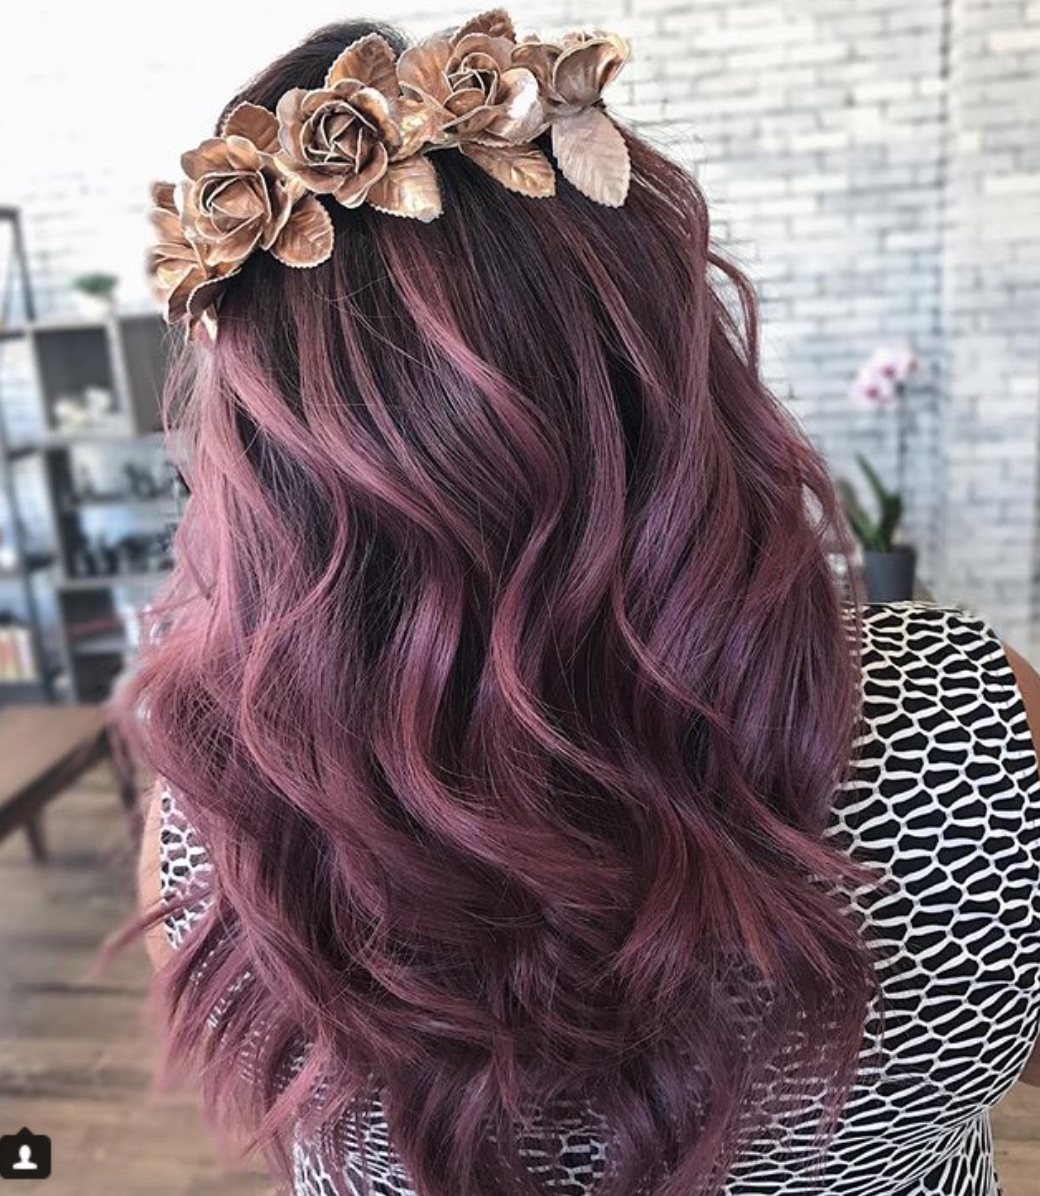 Mulberry Hair Looks Incredibly Cool Here Are 3 Chic Ways To Pull It